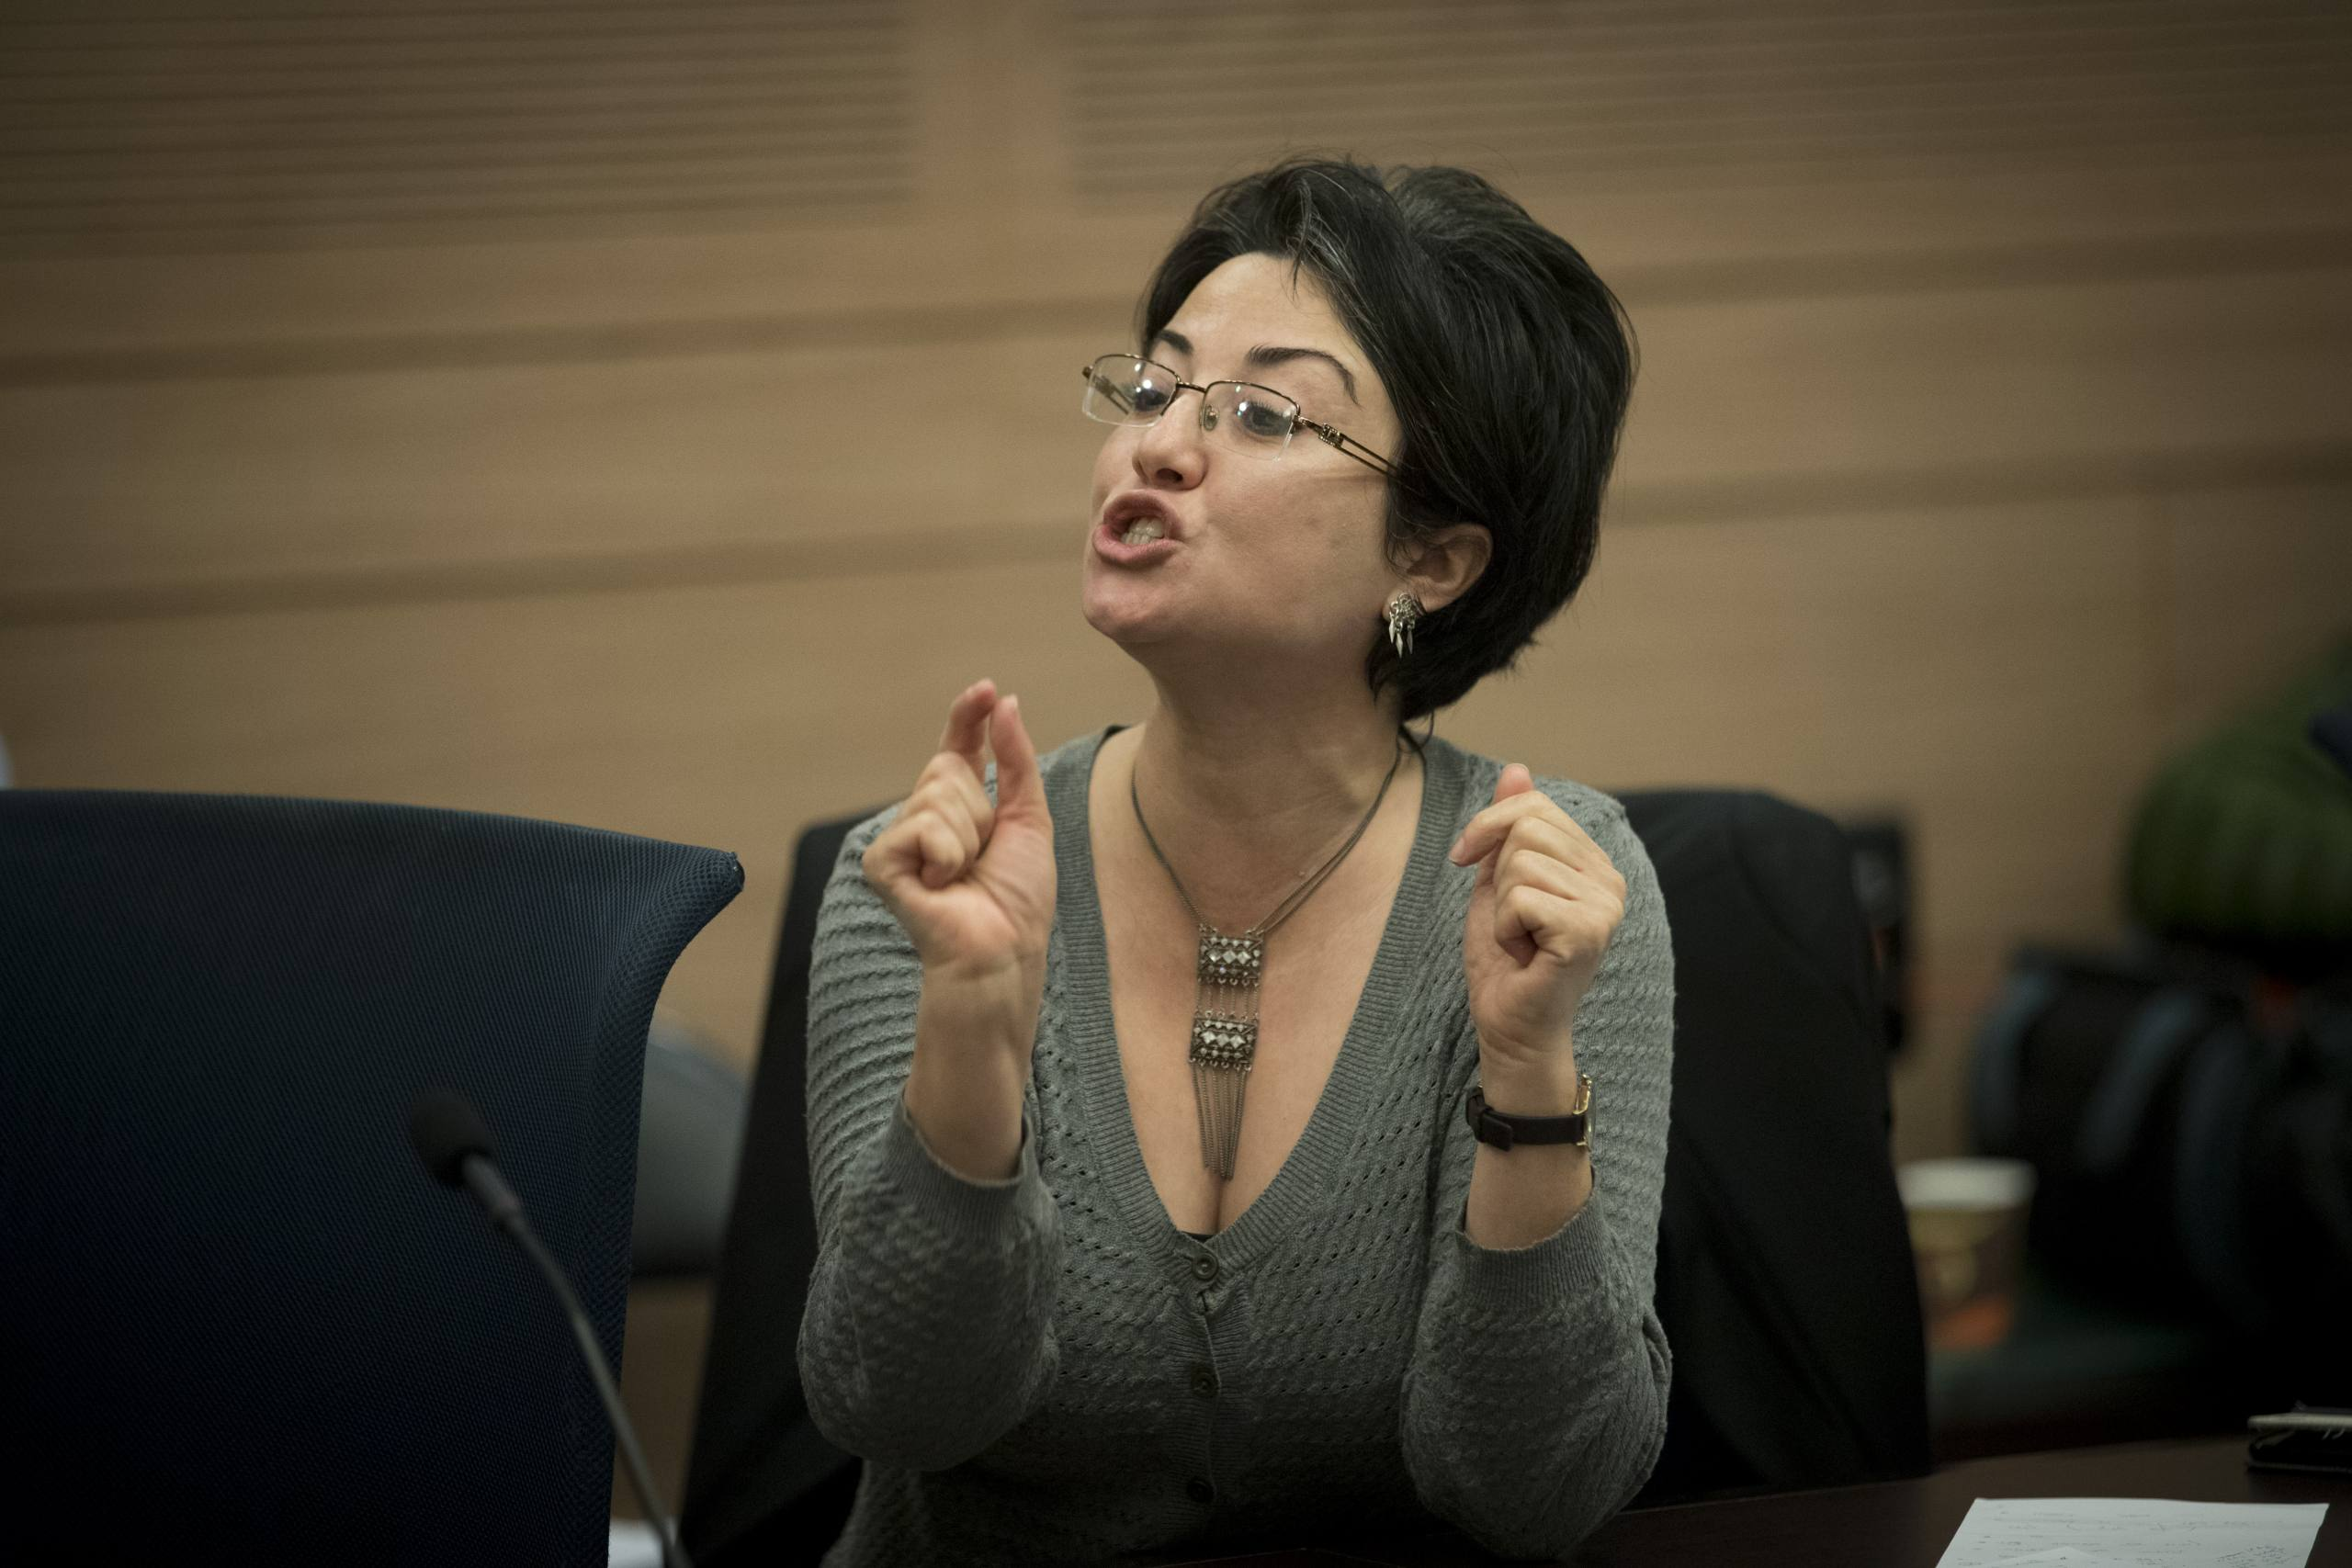 Joint List parliament member Hanin Zoabi attends Education, Culture, and Sports Committee meeting in the Israeli parliament on December 13, 2016. Photo by Yonatan Sindel/Flash90 *** Local Caption *** ועדת חינוך כנסת ירושלים חנין זועבי